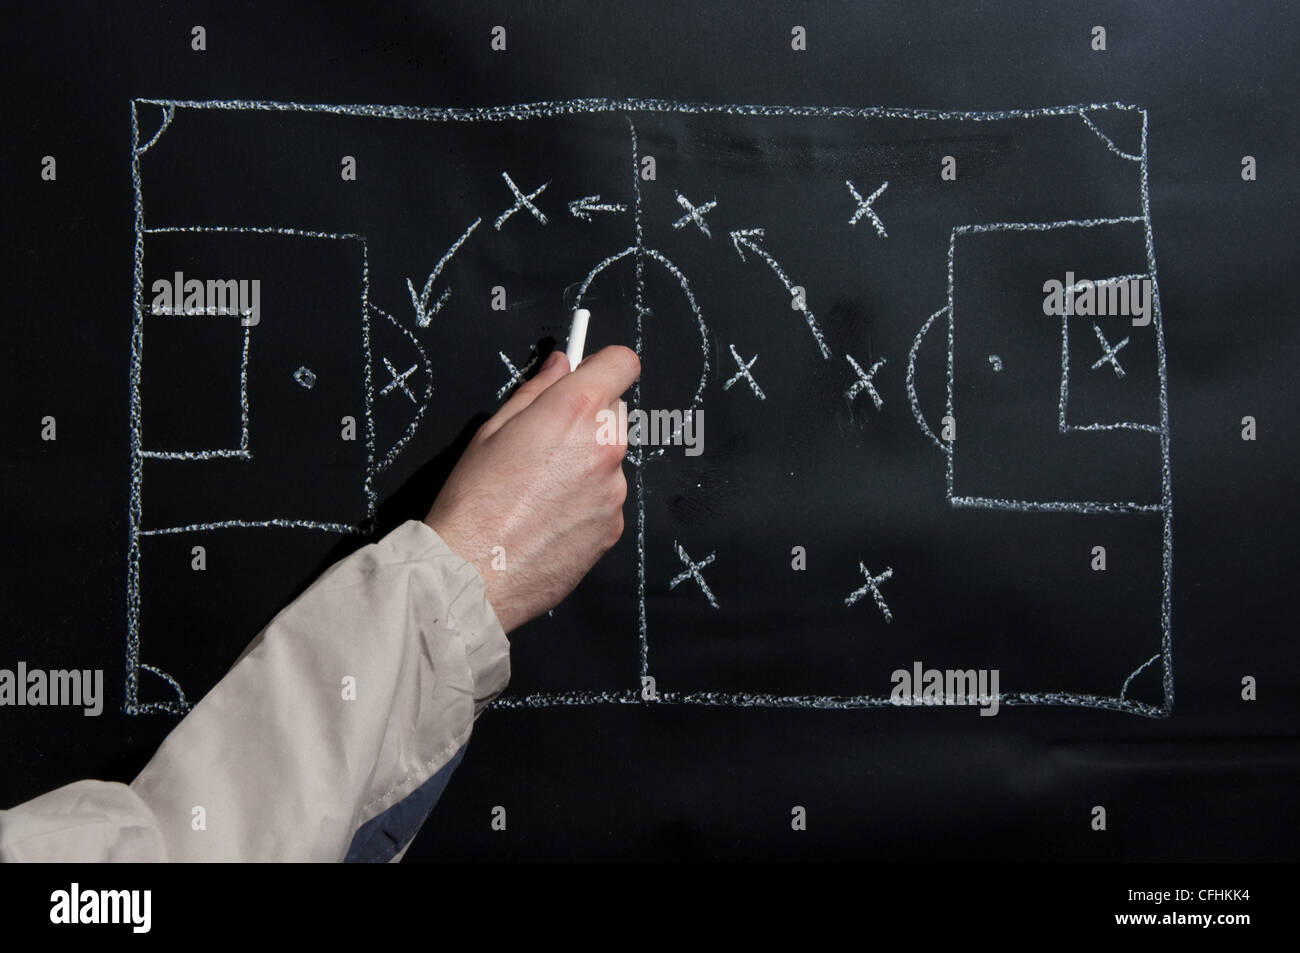 Man drawing a soccer game tactics and strategy with white chalk on a blackboard. - Stock Image